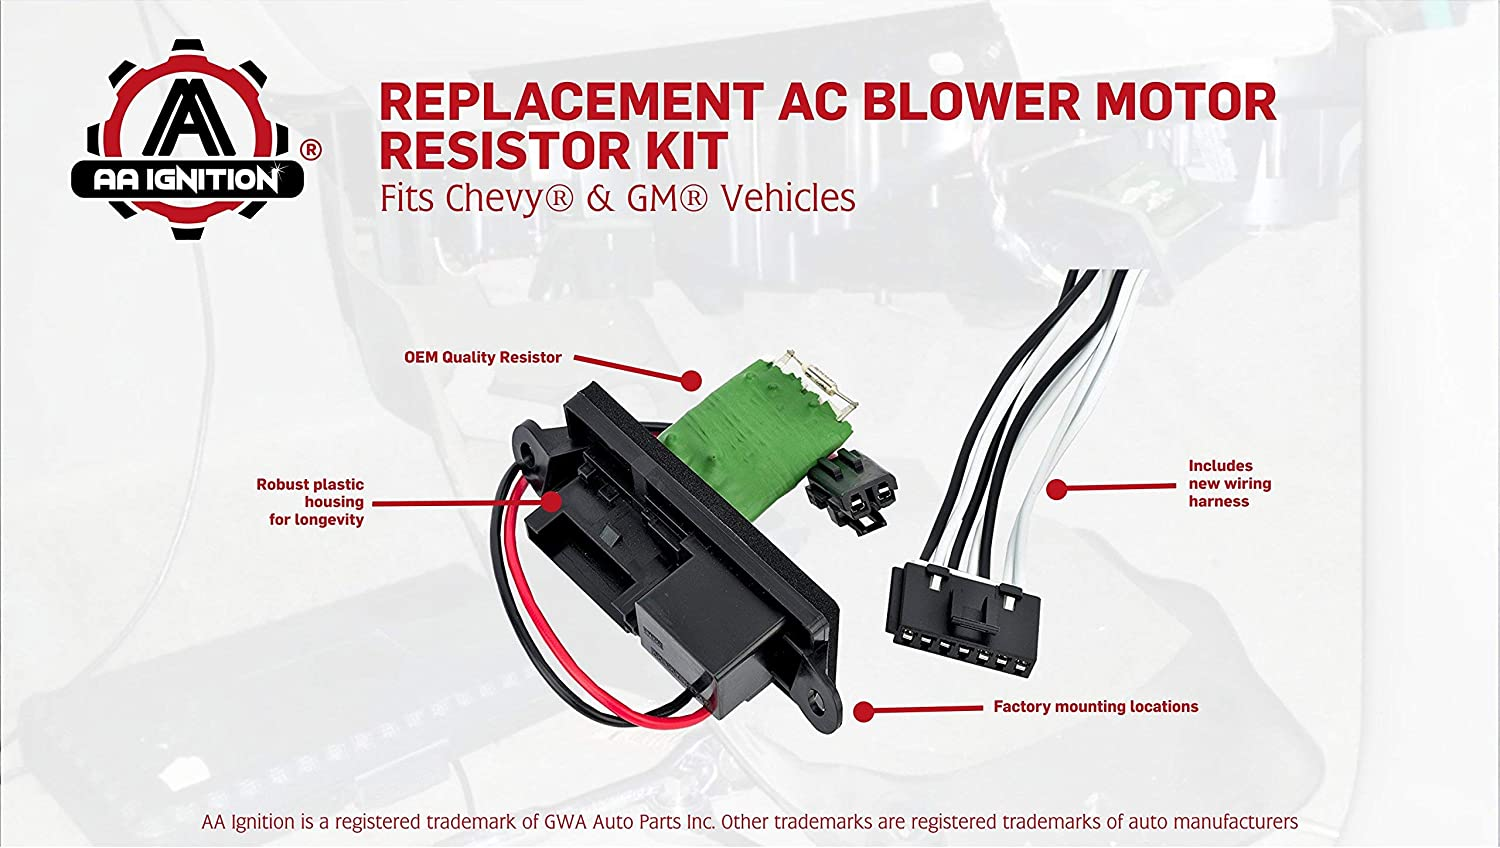 Blower Motor Resistor Complete Kit With Wire Harness For GMC Sierra Yukon Chevy